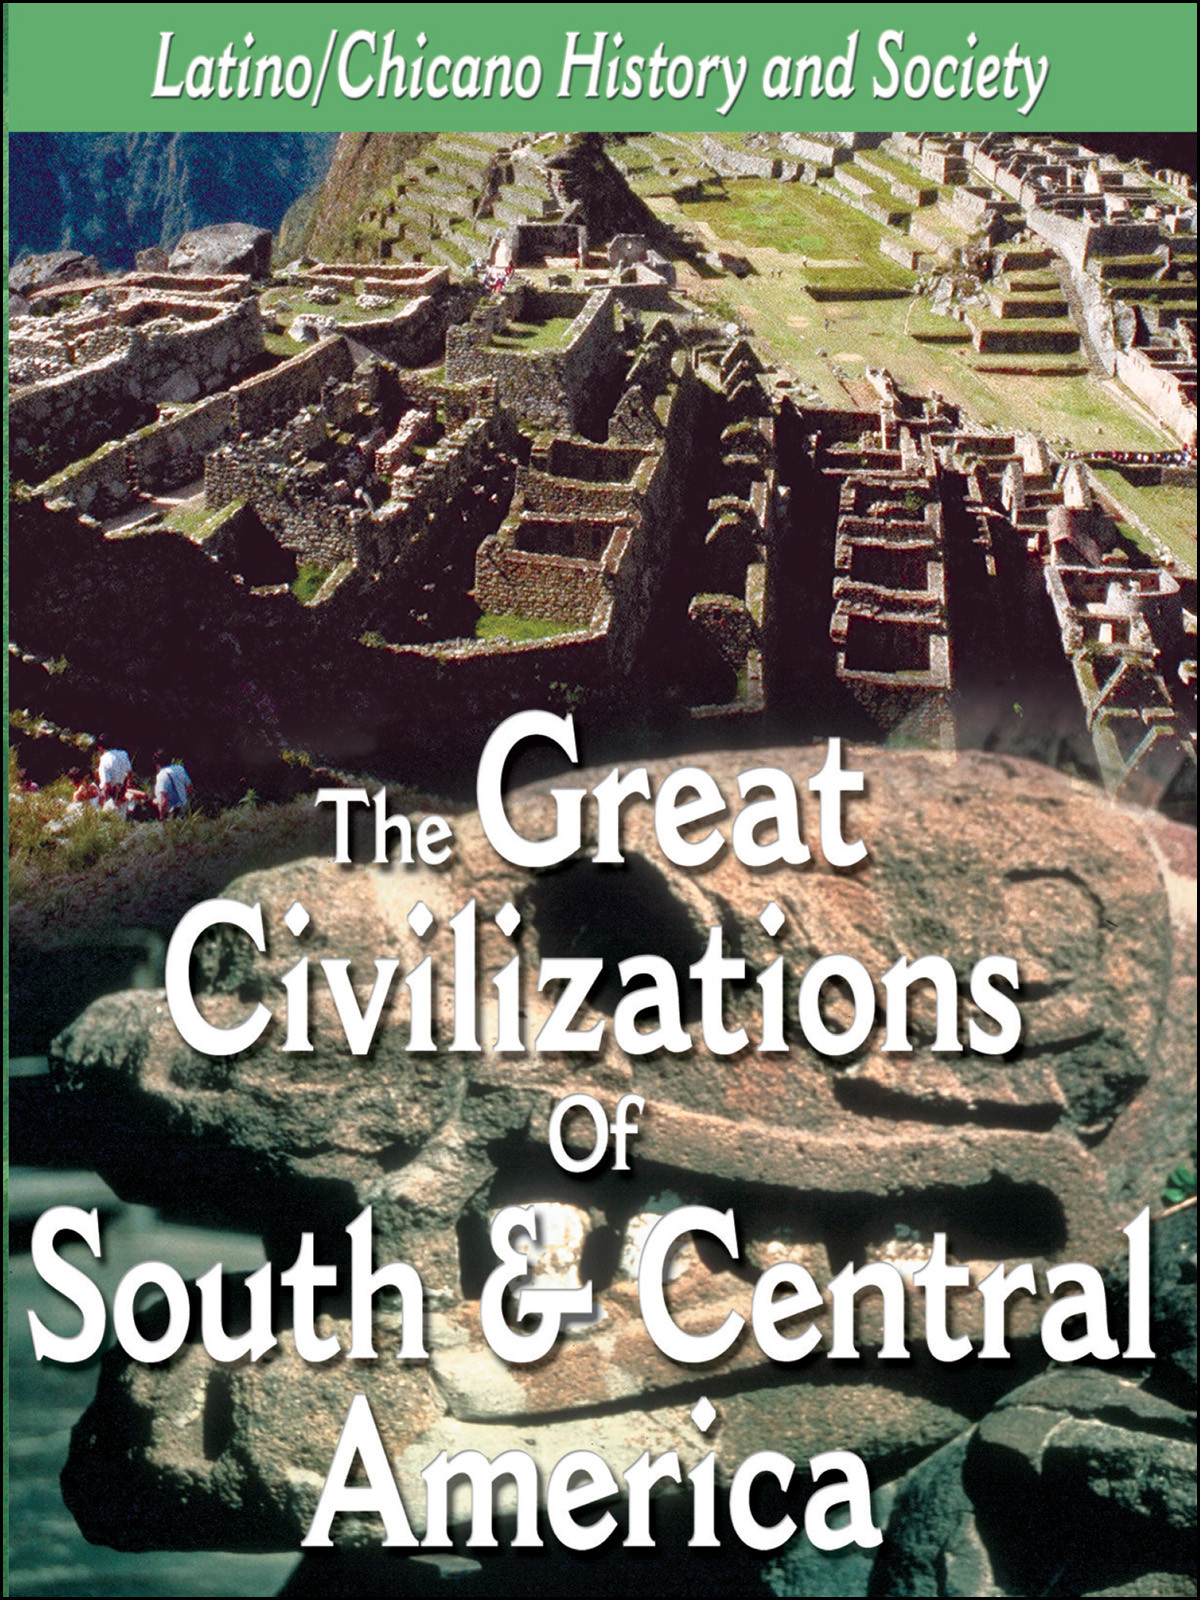 L910 - The Great Civilizations of South & Central America